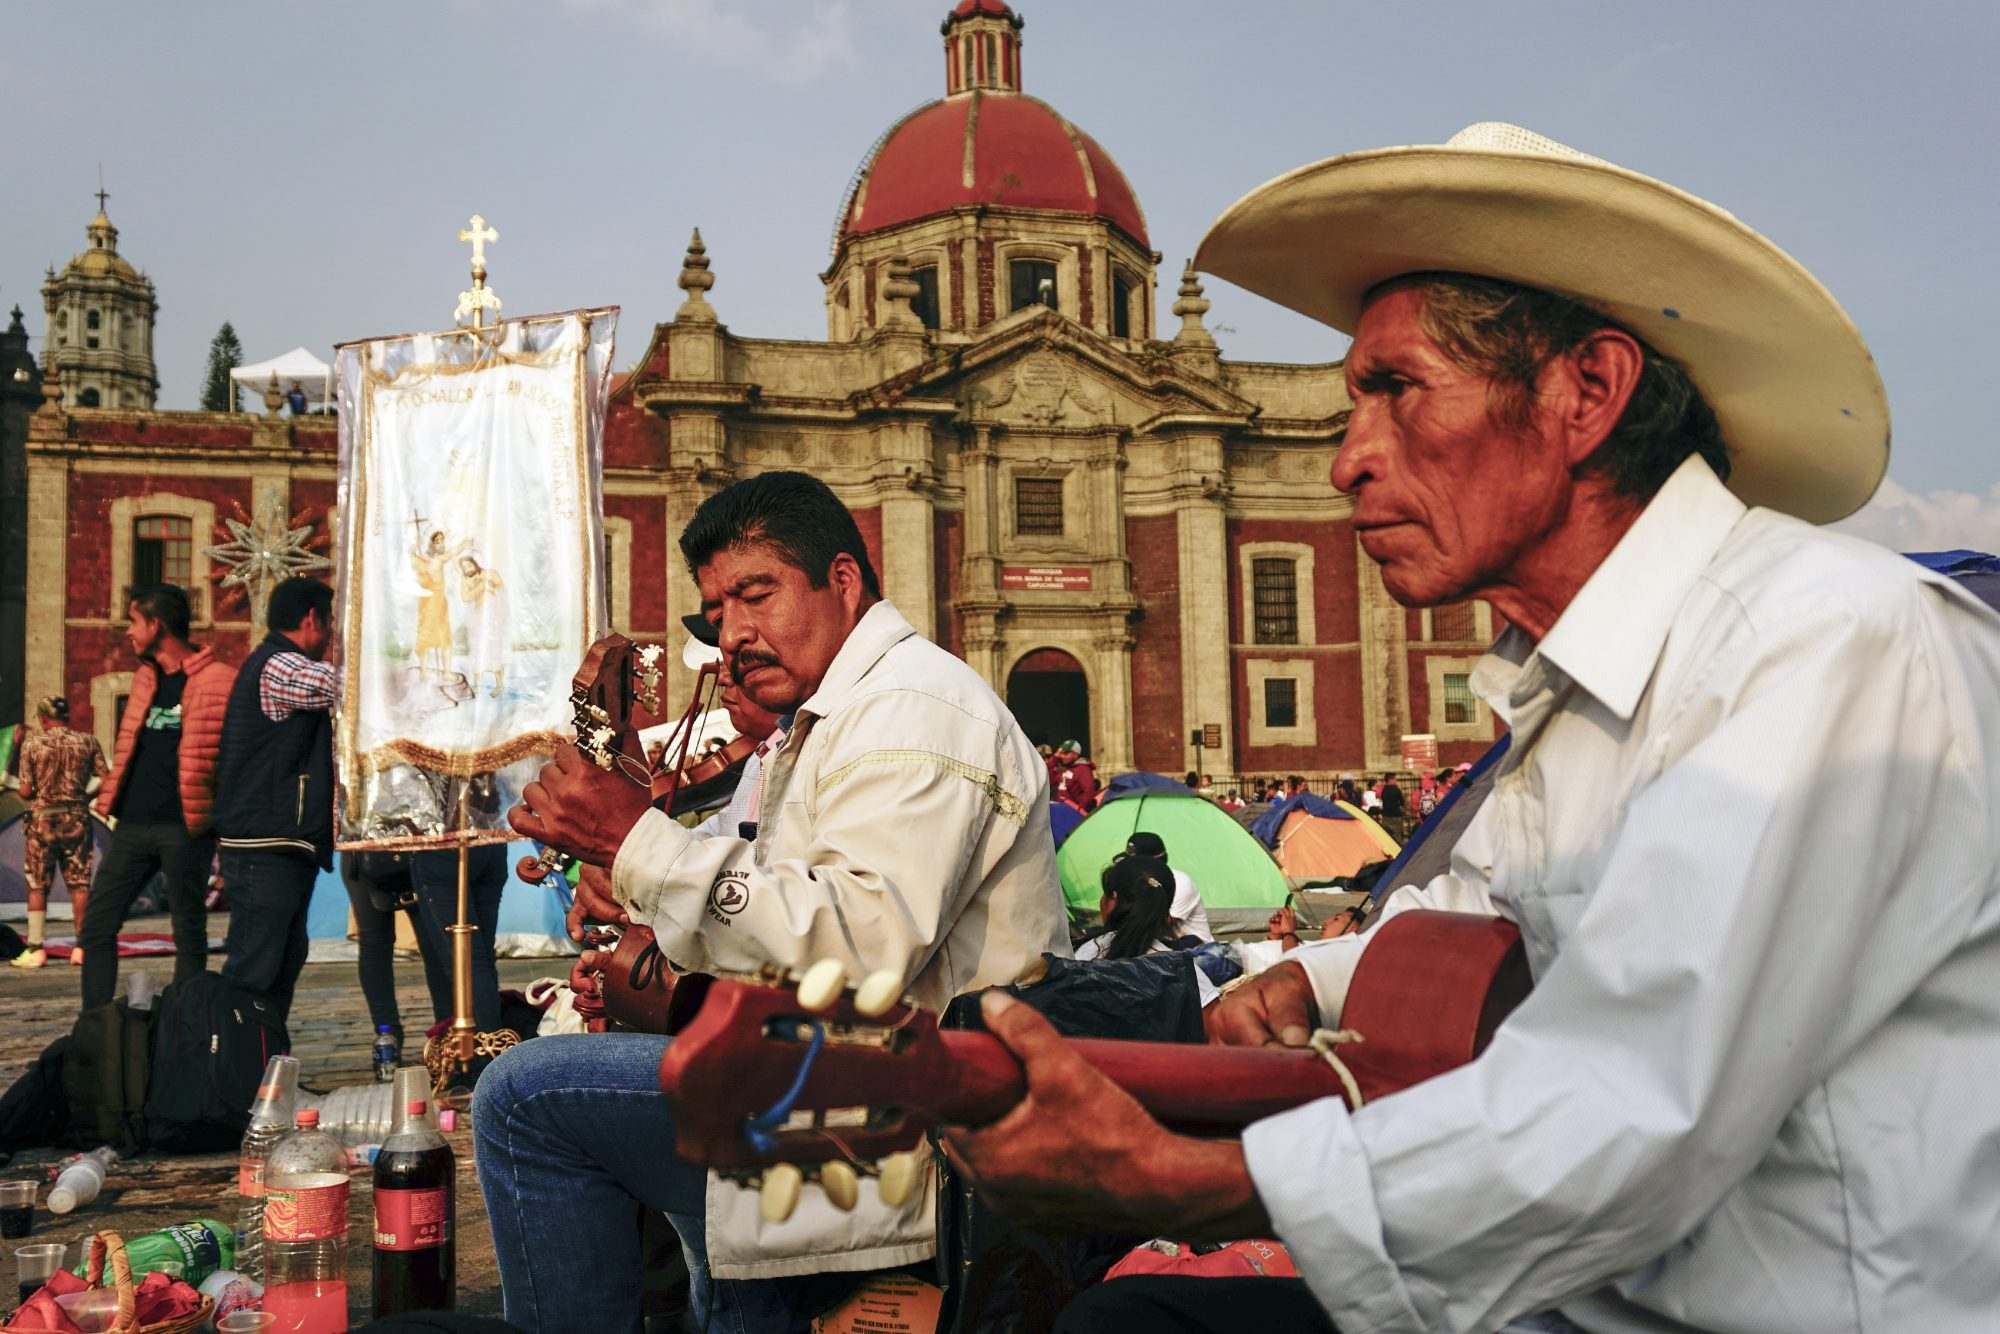 Day Of Our Lady Of Guadalupe Celebrations In Mexico